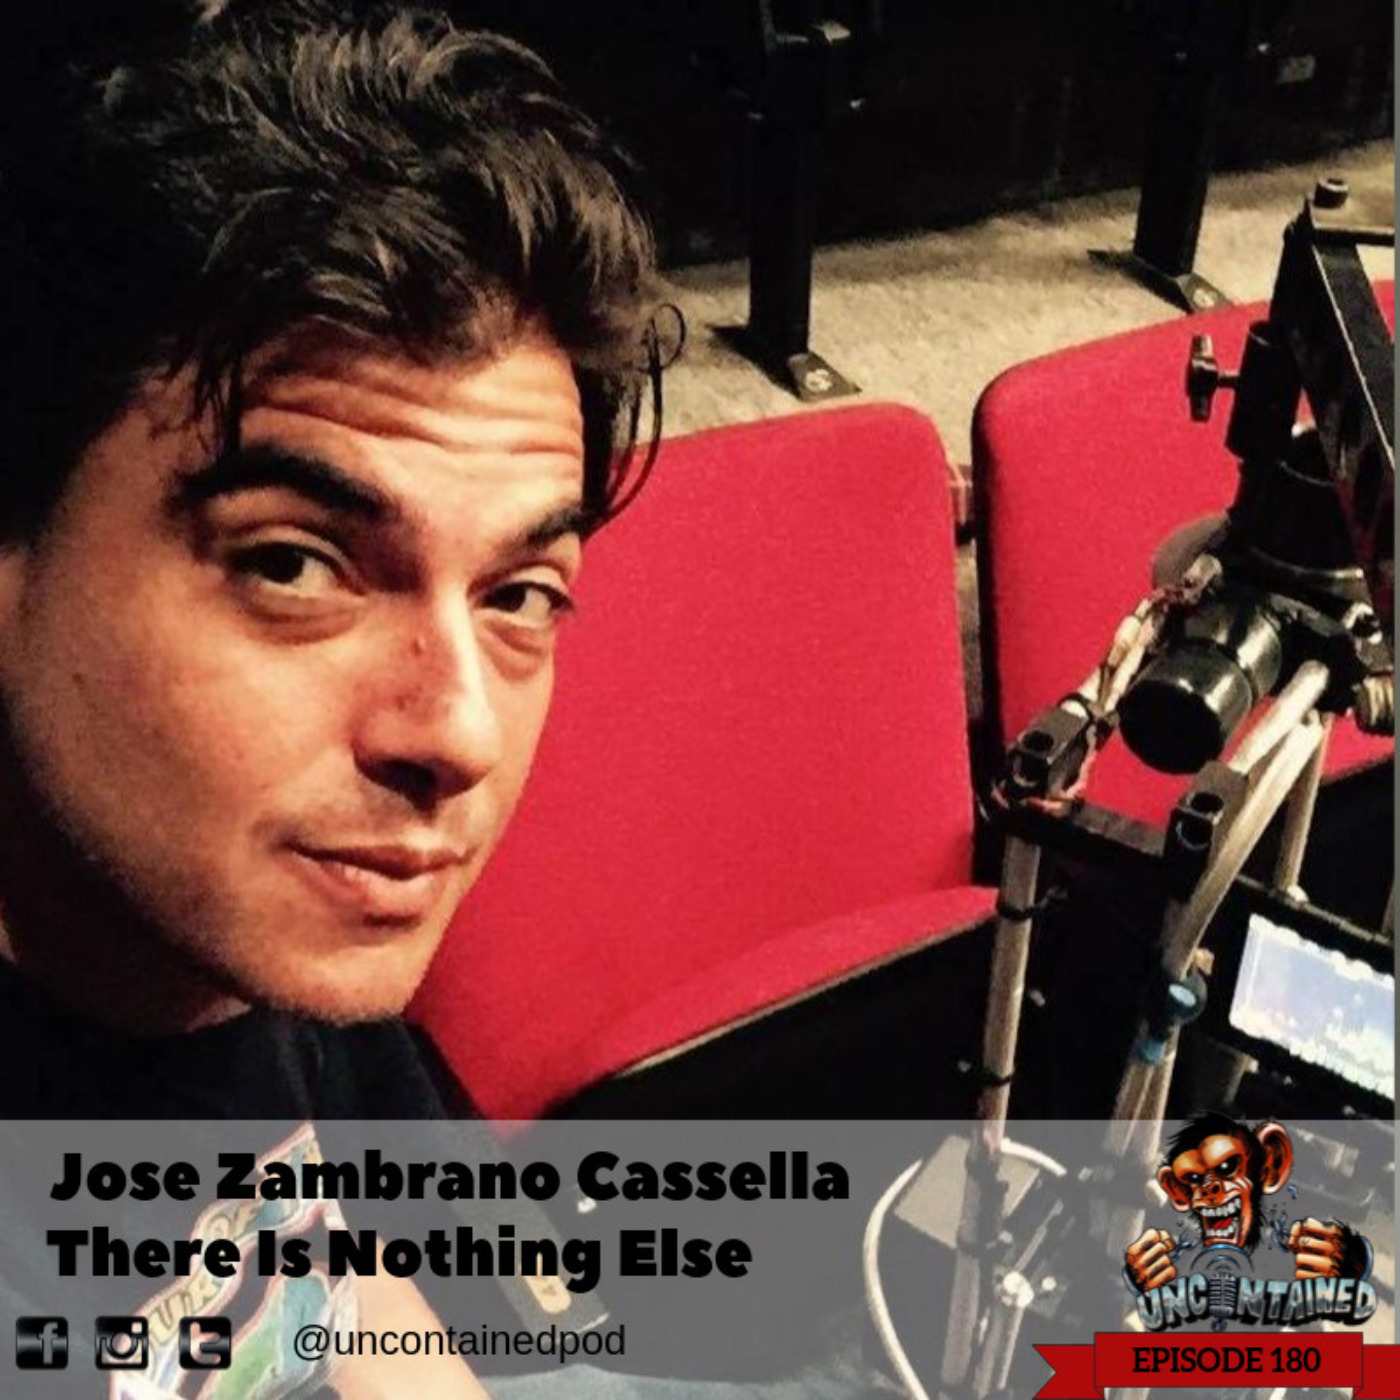 Episode 180: Jose Zambrano Cassella -  There Is Nothing Else